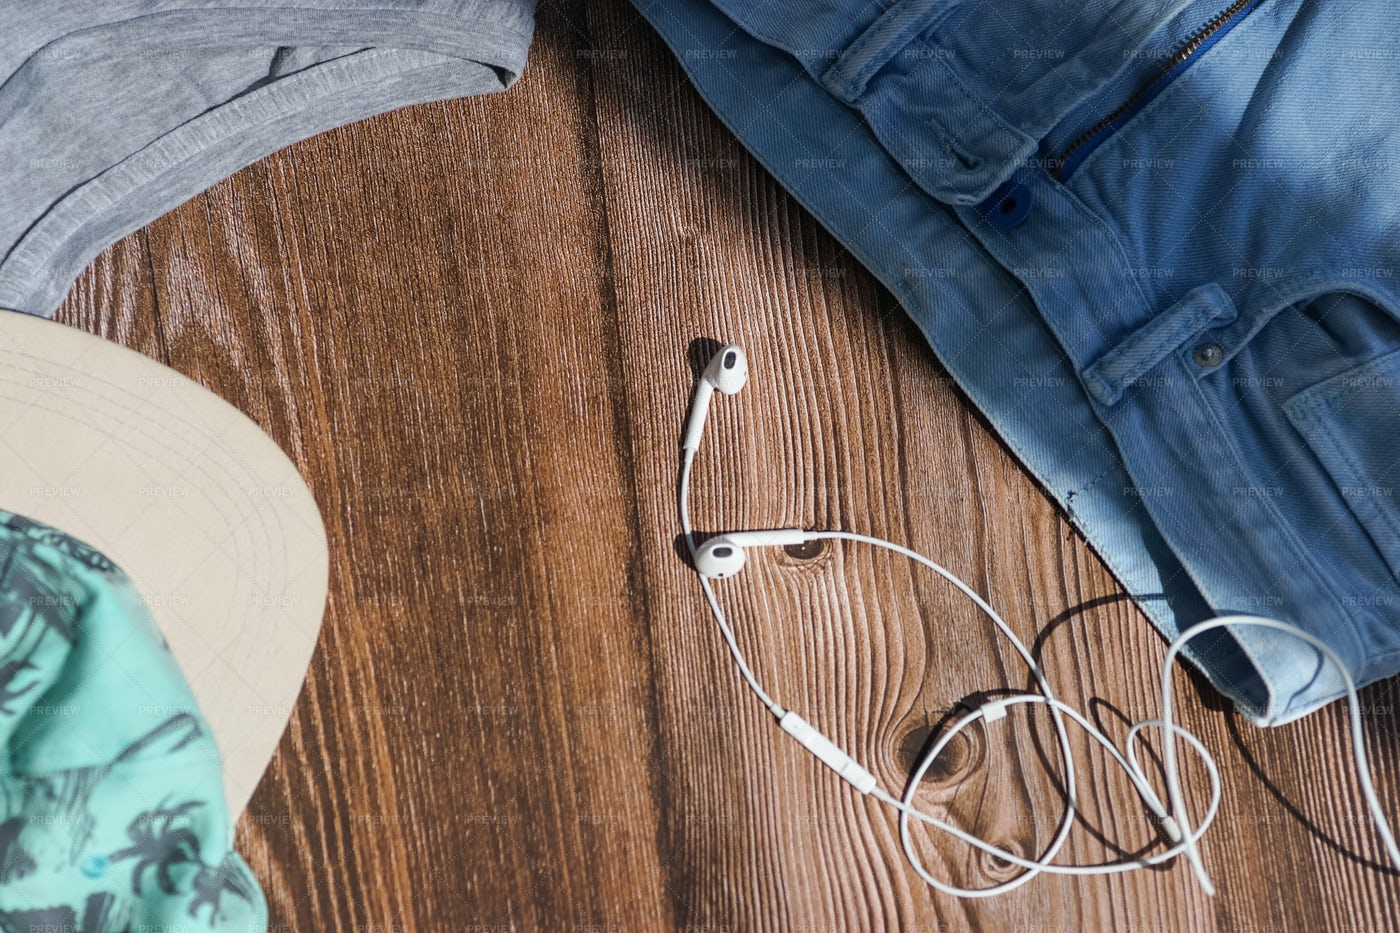 Headphones And Clothes: Stock Photos